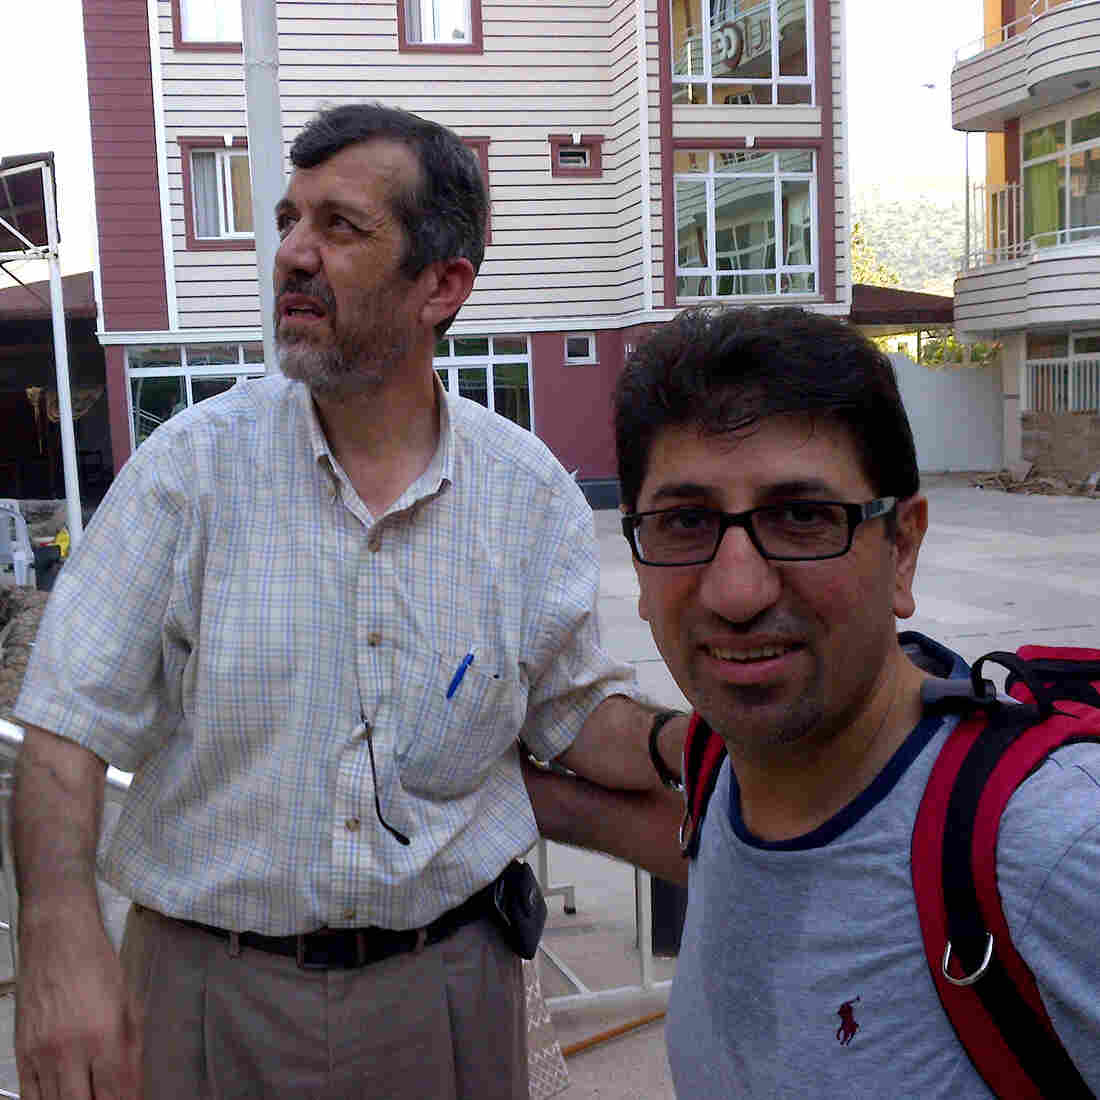 Dr. Yahya Abdul Rahim (left) and Dr. Ammar Ghanem are among the Syrian-American doctors who have come to the Turkish-Syrian border to help Syrians wounded in the anti-government revolt. Some work to improve the flow of supplies; others treat patients in Turkey; still others, like Ghanem, strap backpacks on and walk across the border to help those in Syria.